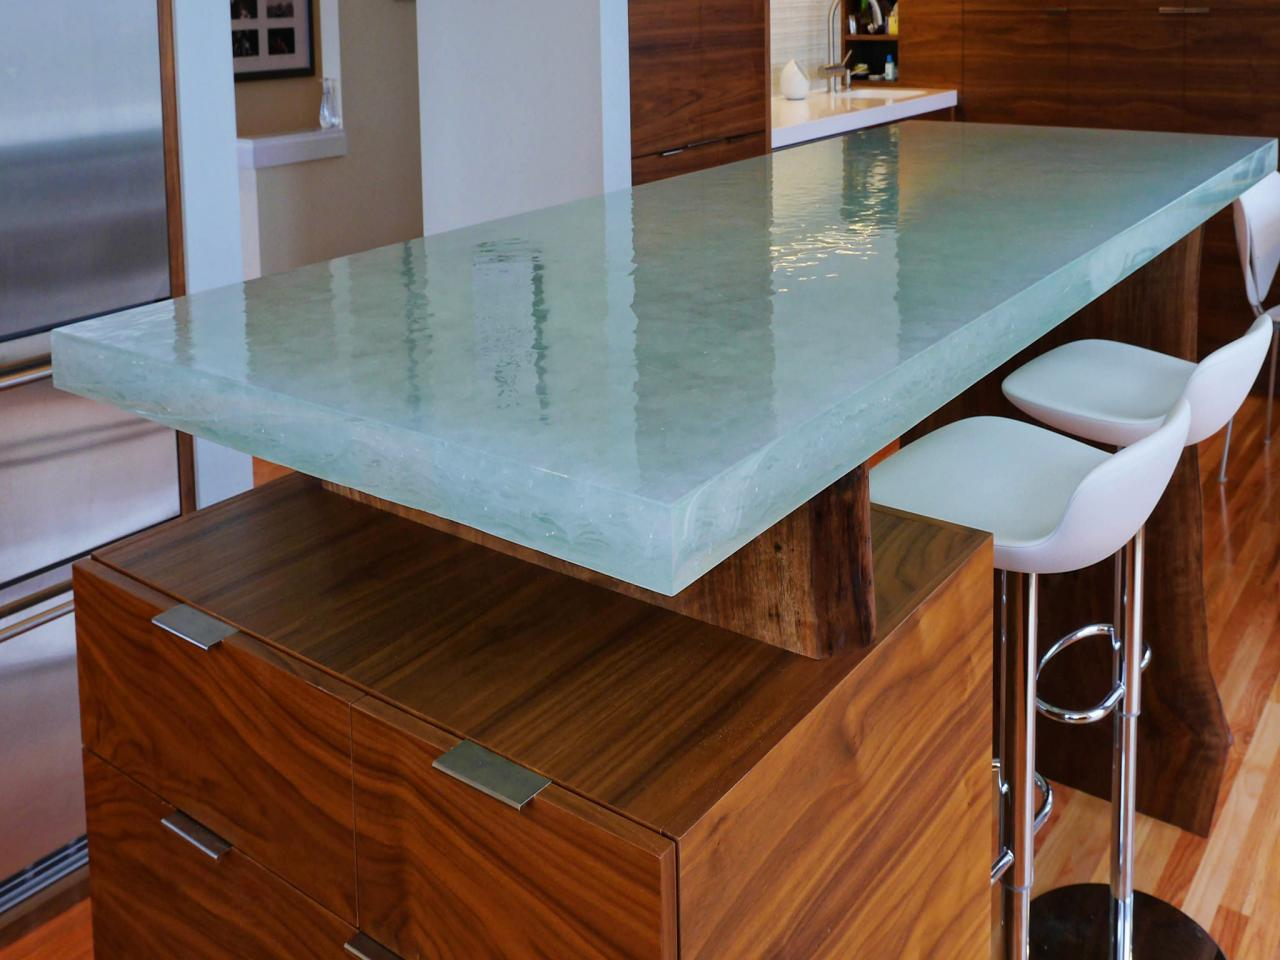 original_glassworks-glass-kitchen-countertop-jpg-rend-hgtvcom-1280-960